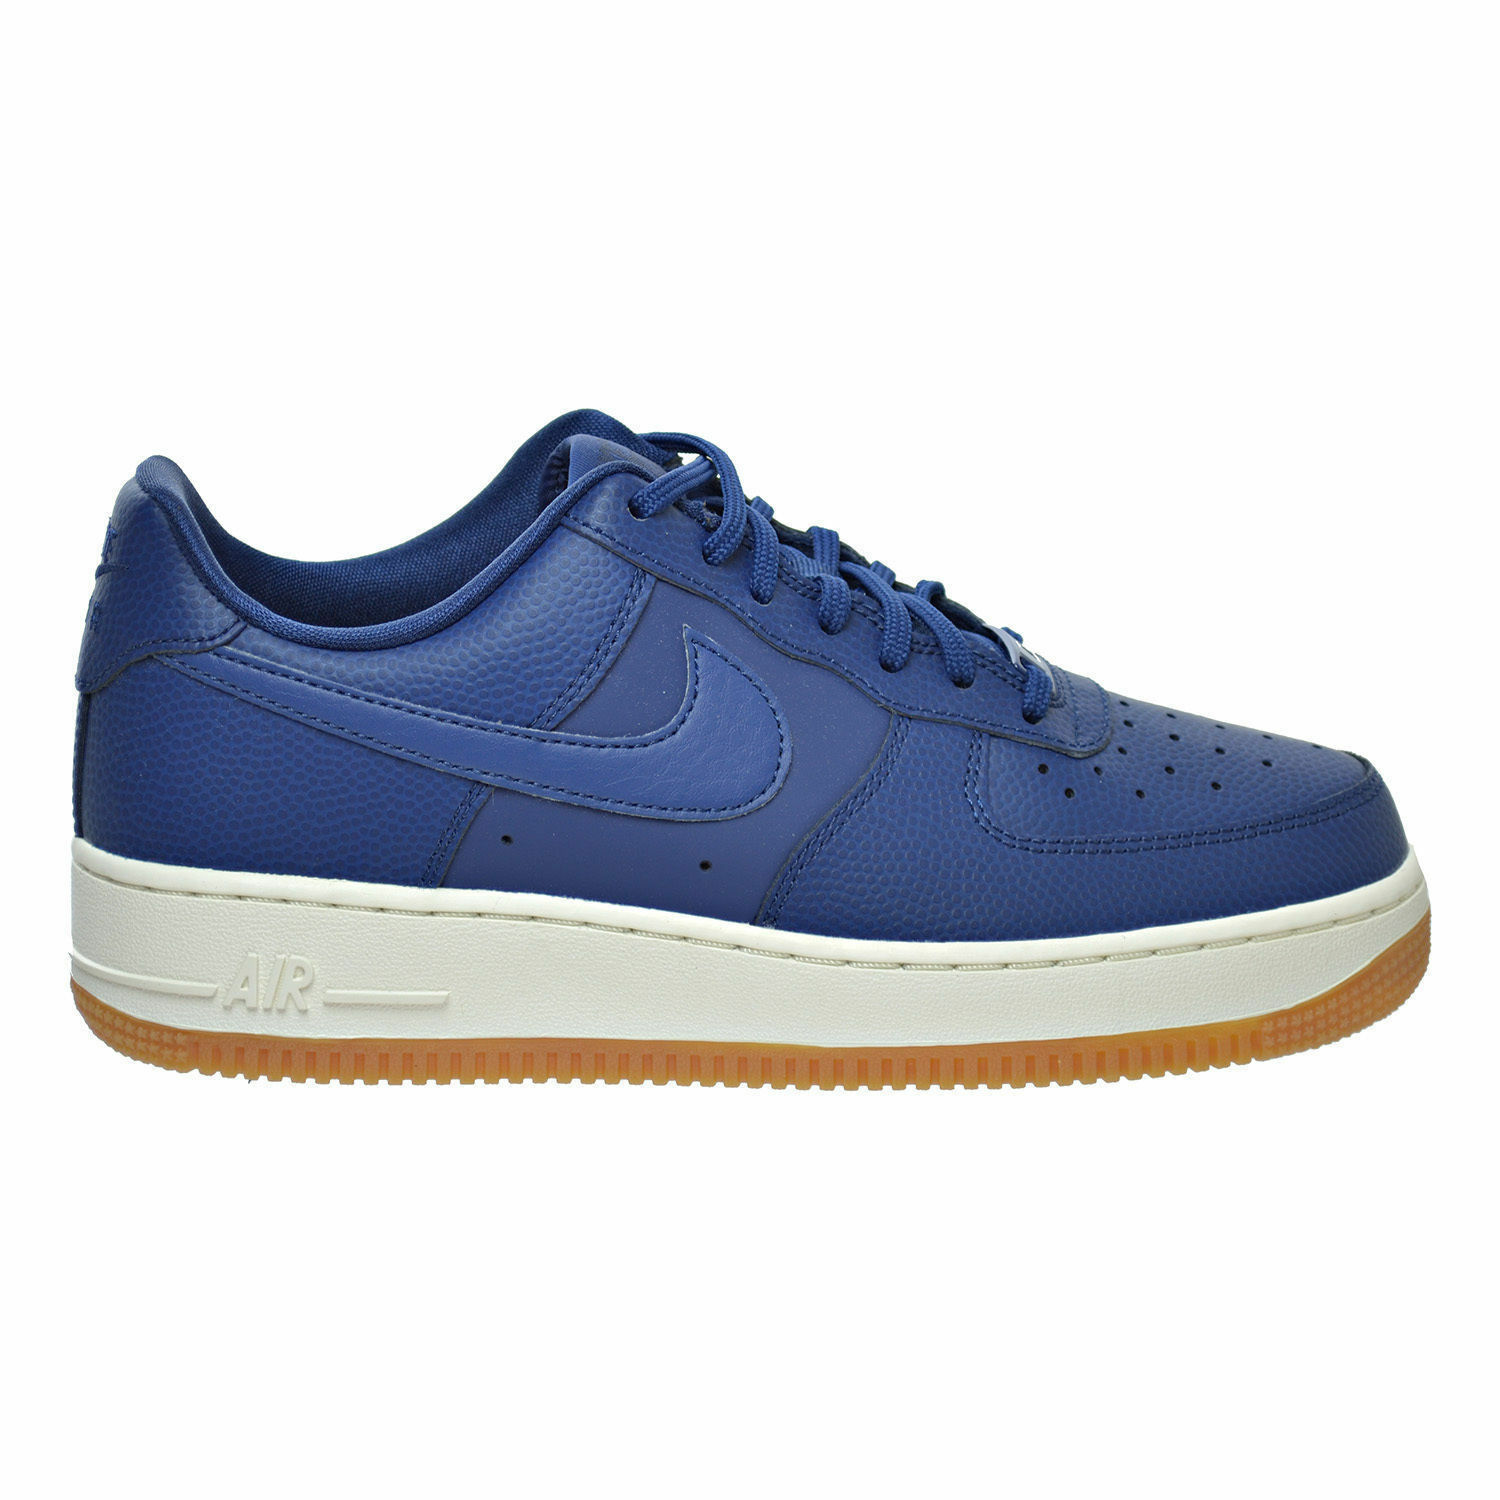 NIKE WOMENS AIR FORCE 1 '07 SEASONAL SHOES SIZE 7 coastal bluee 818594 401